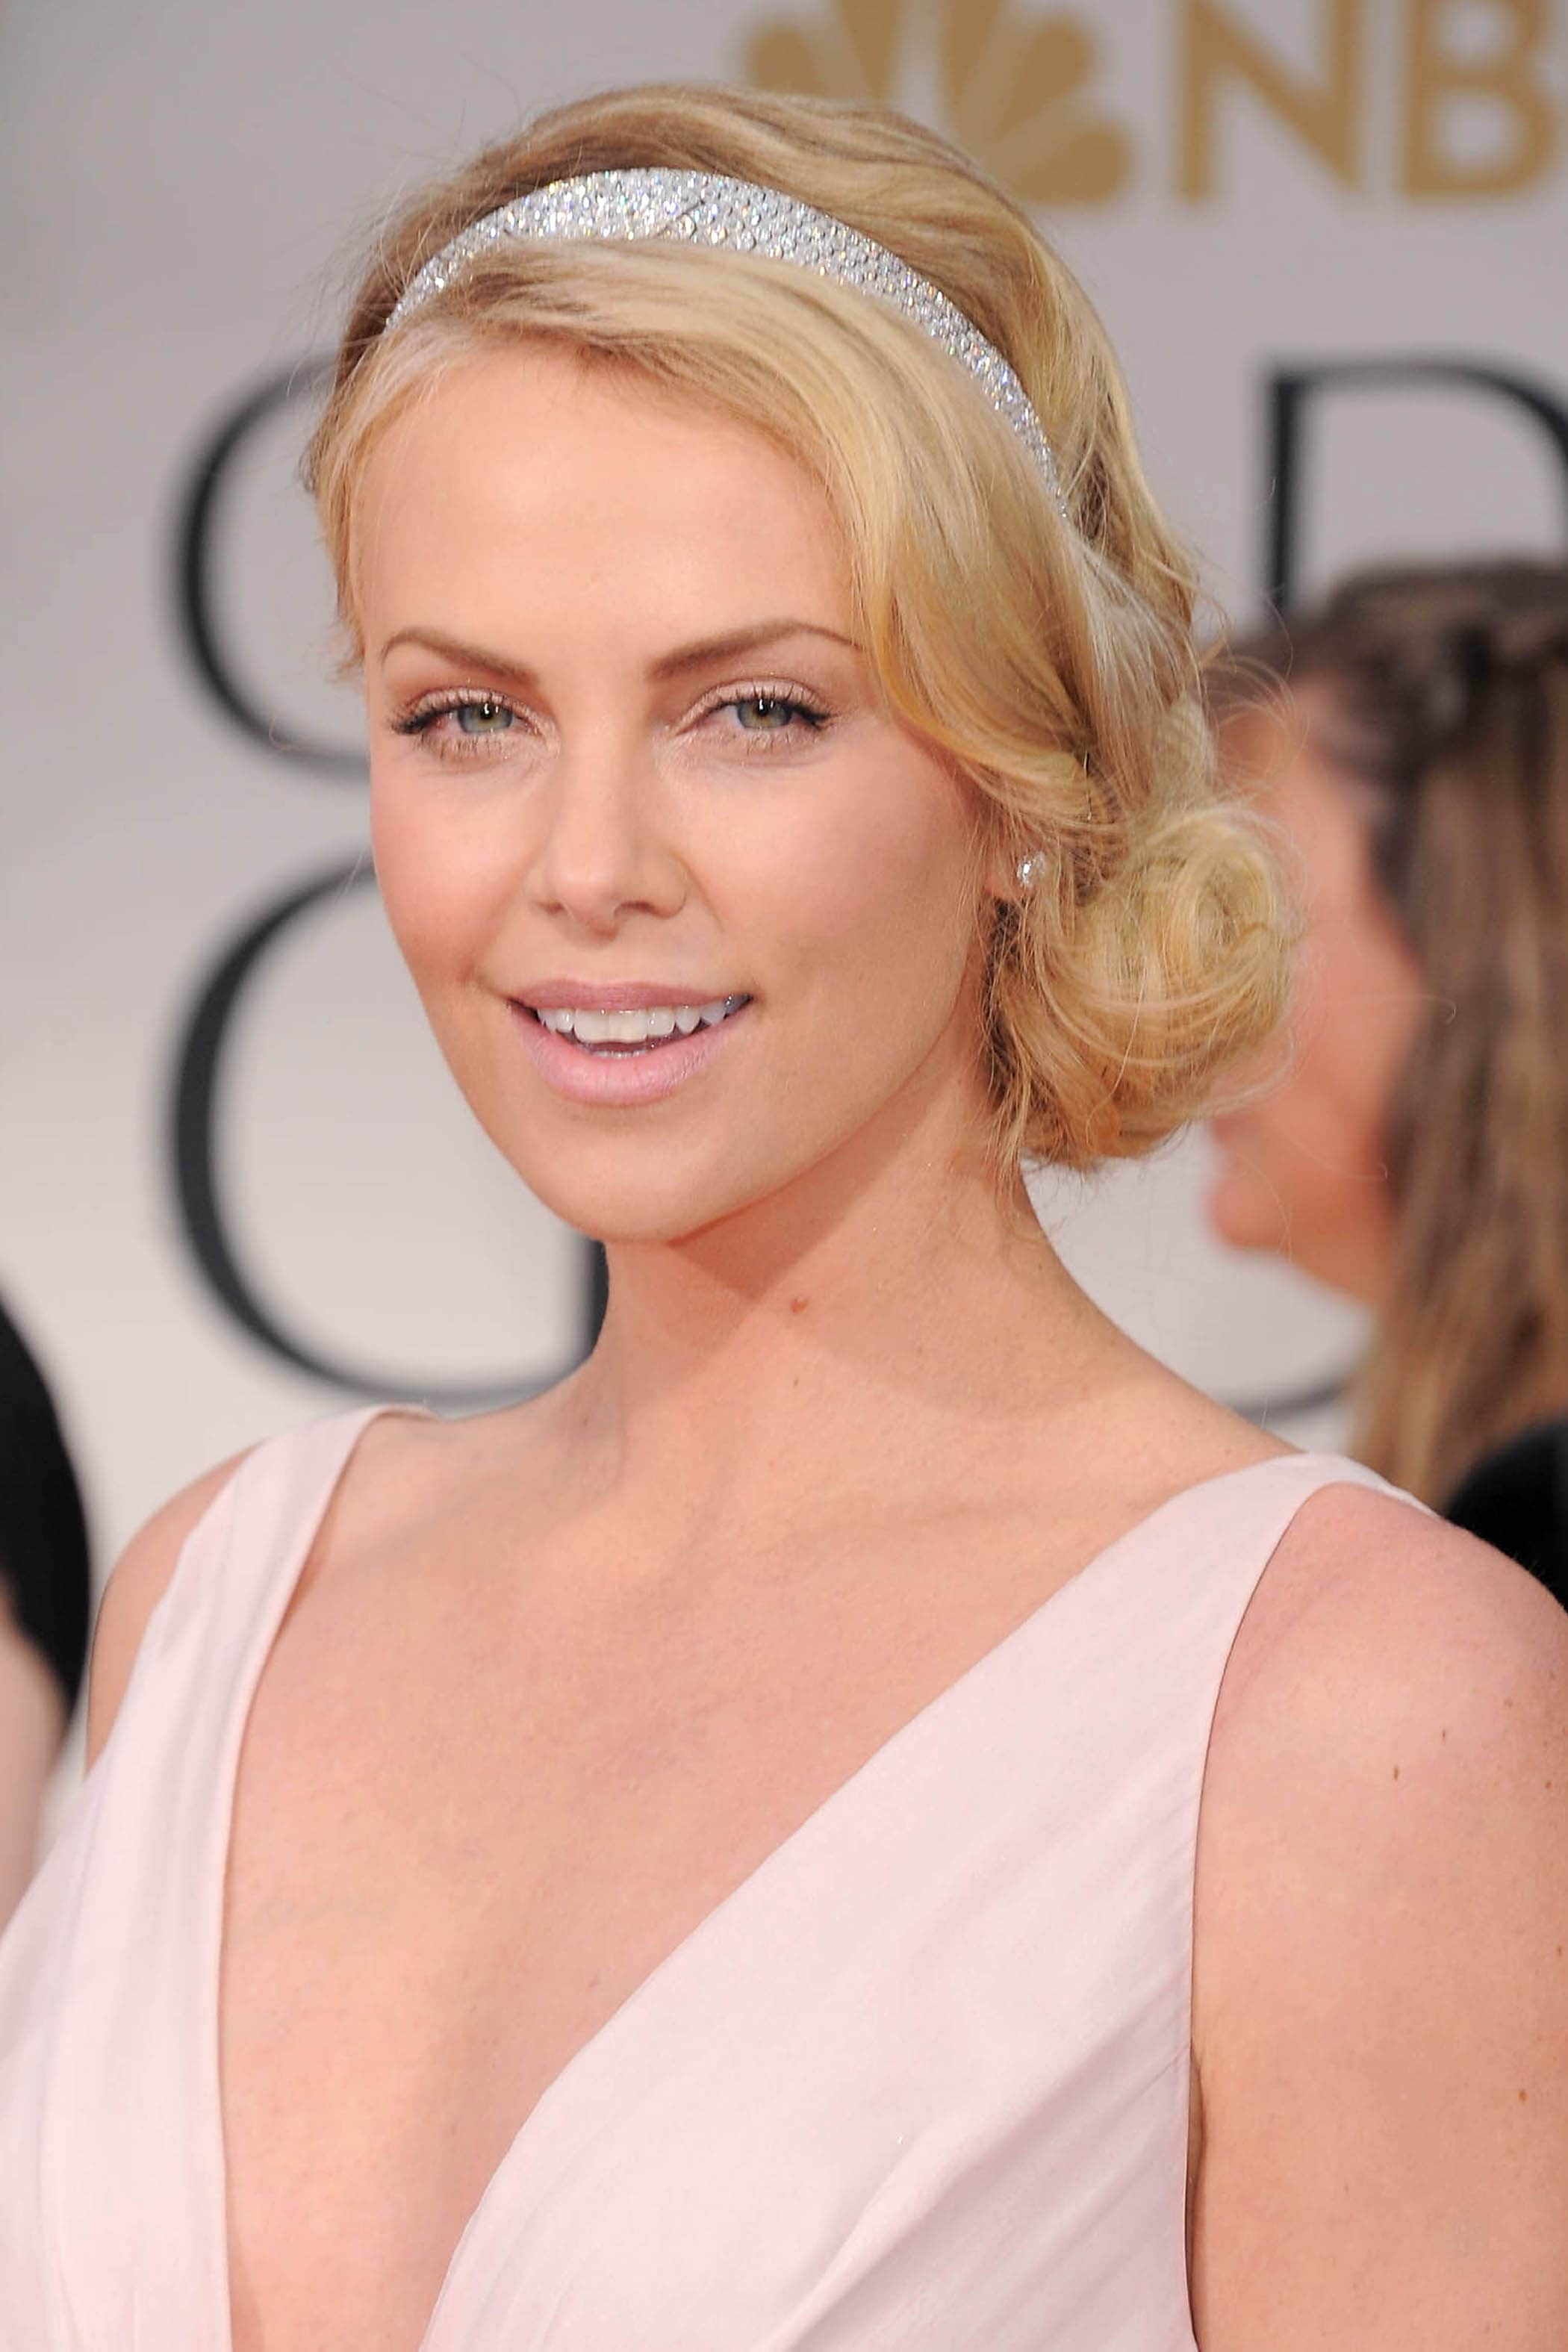 actress charlize theron with a blonde wavy side chignon hairstyle